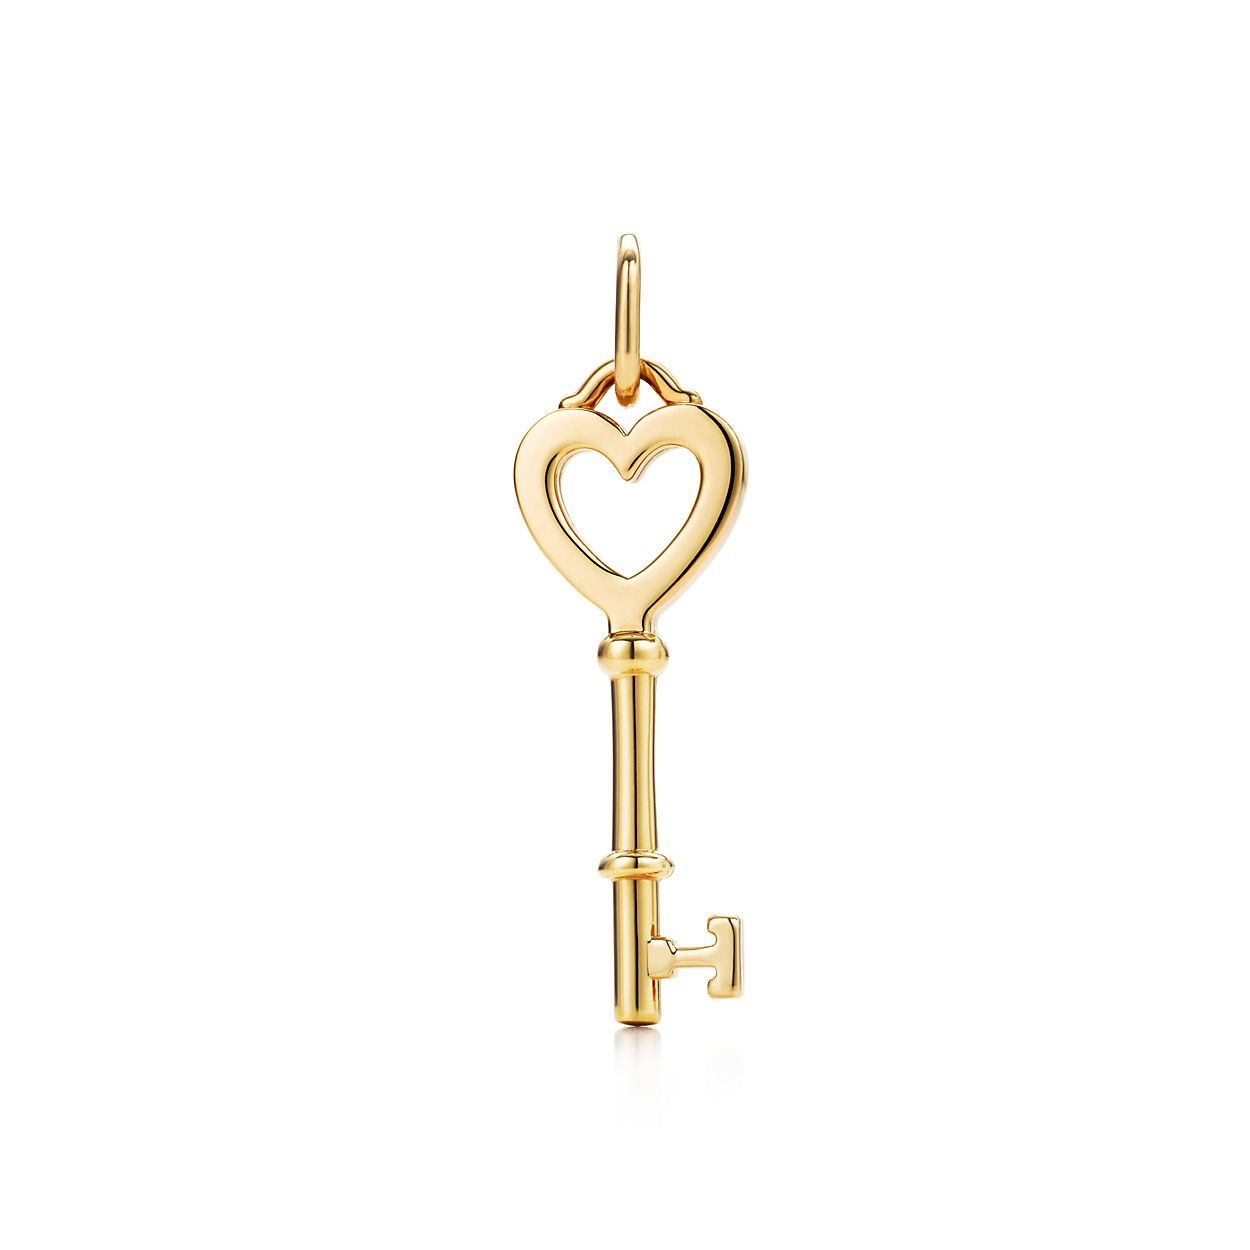 Tiffany keys heart key pendant in 18k gold tiffany co tiffany keysheart key pendant tiffany keysheart key pendant aloadofball Gallery